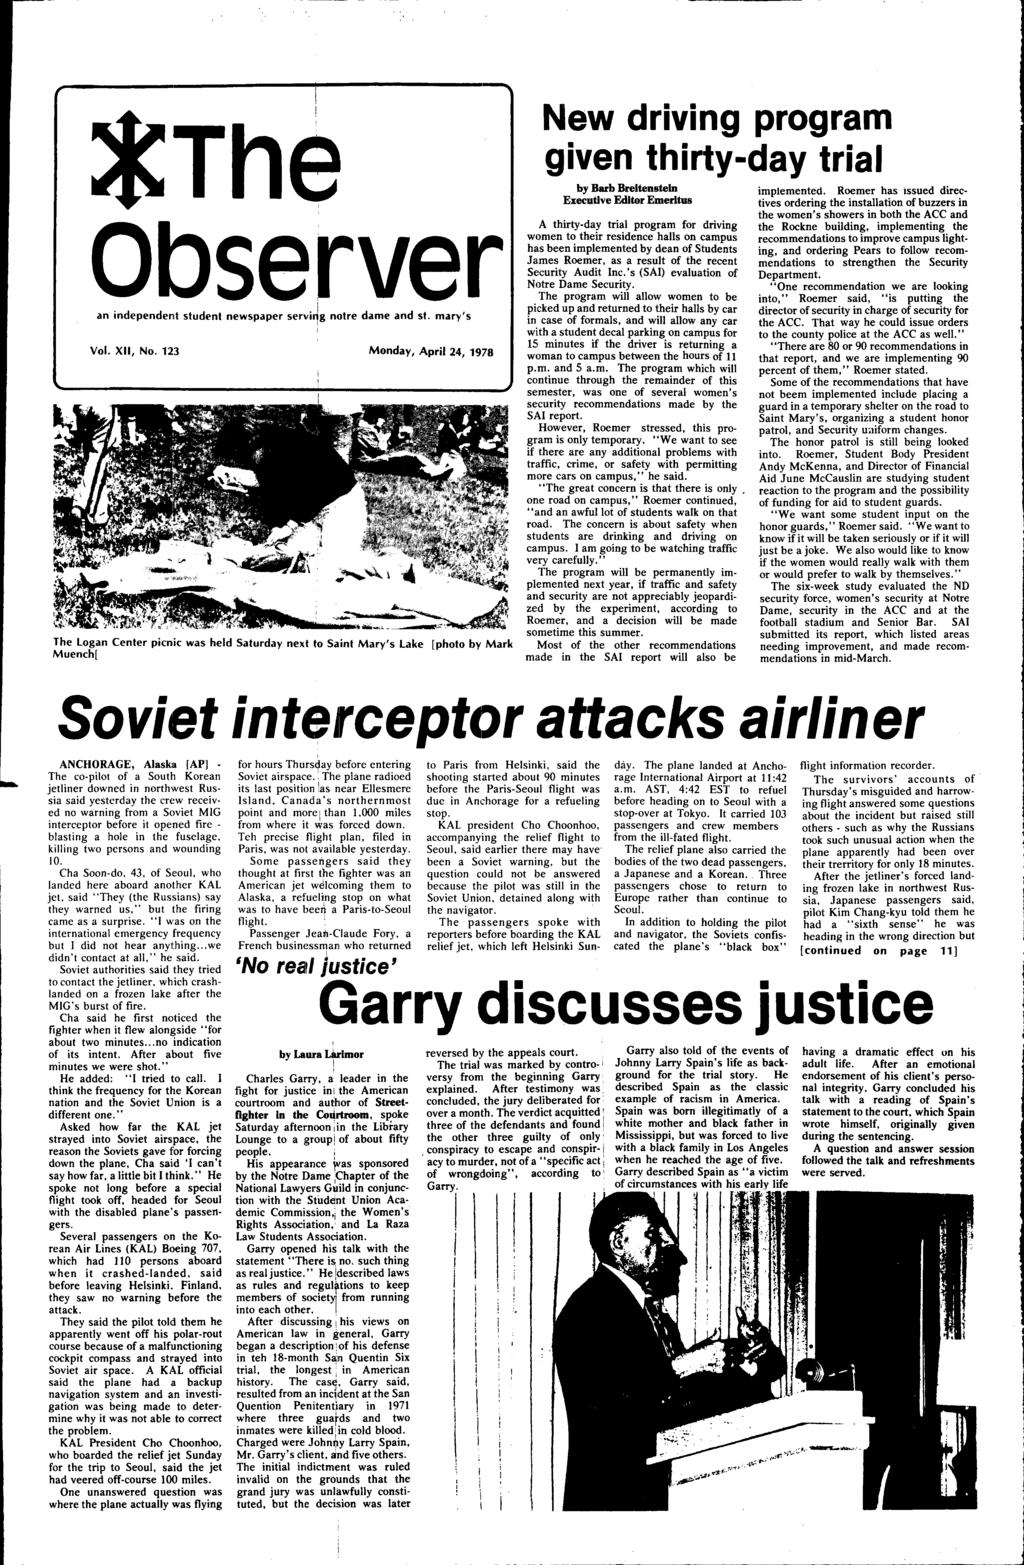 Soviet Interceptor Attacks Airliner Pdf No Disassemble The Behind Scenes Pic Of Day Is Alive Observer An Independe111t Student Newspaper Servig Notre Dame And St Marys Vol